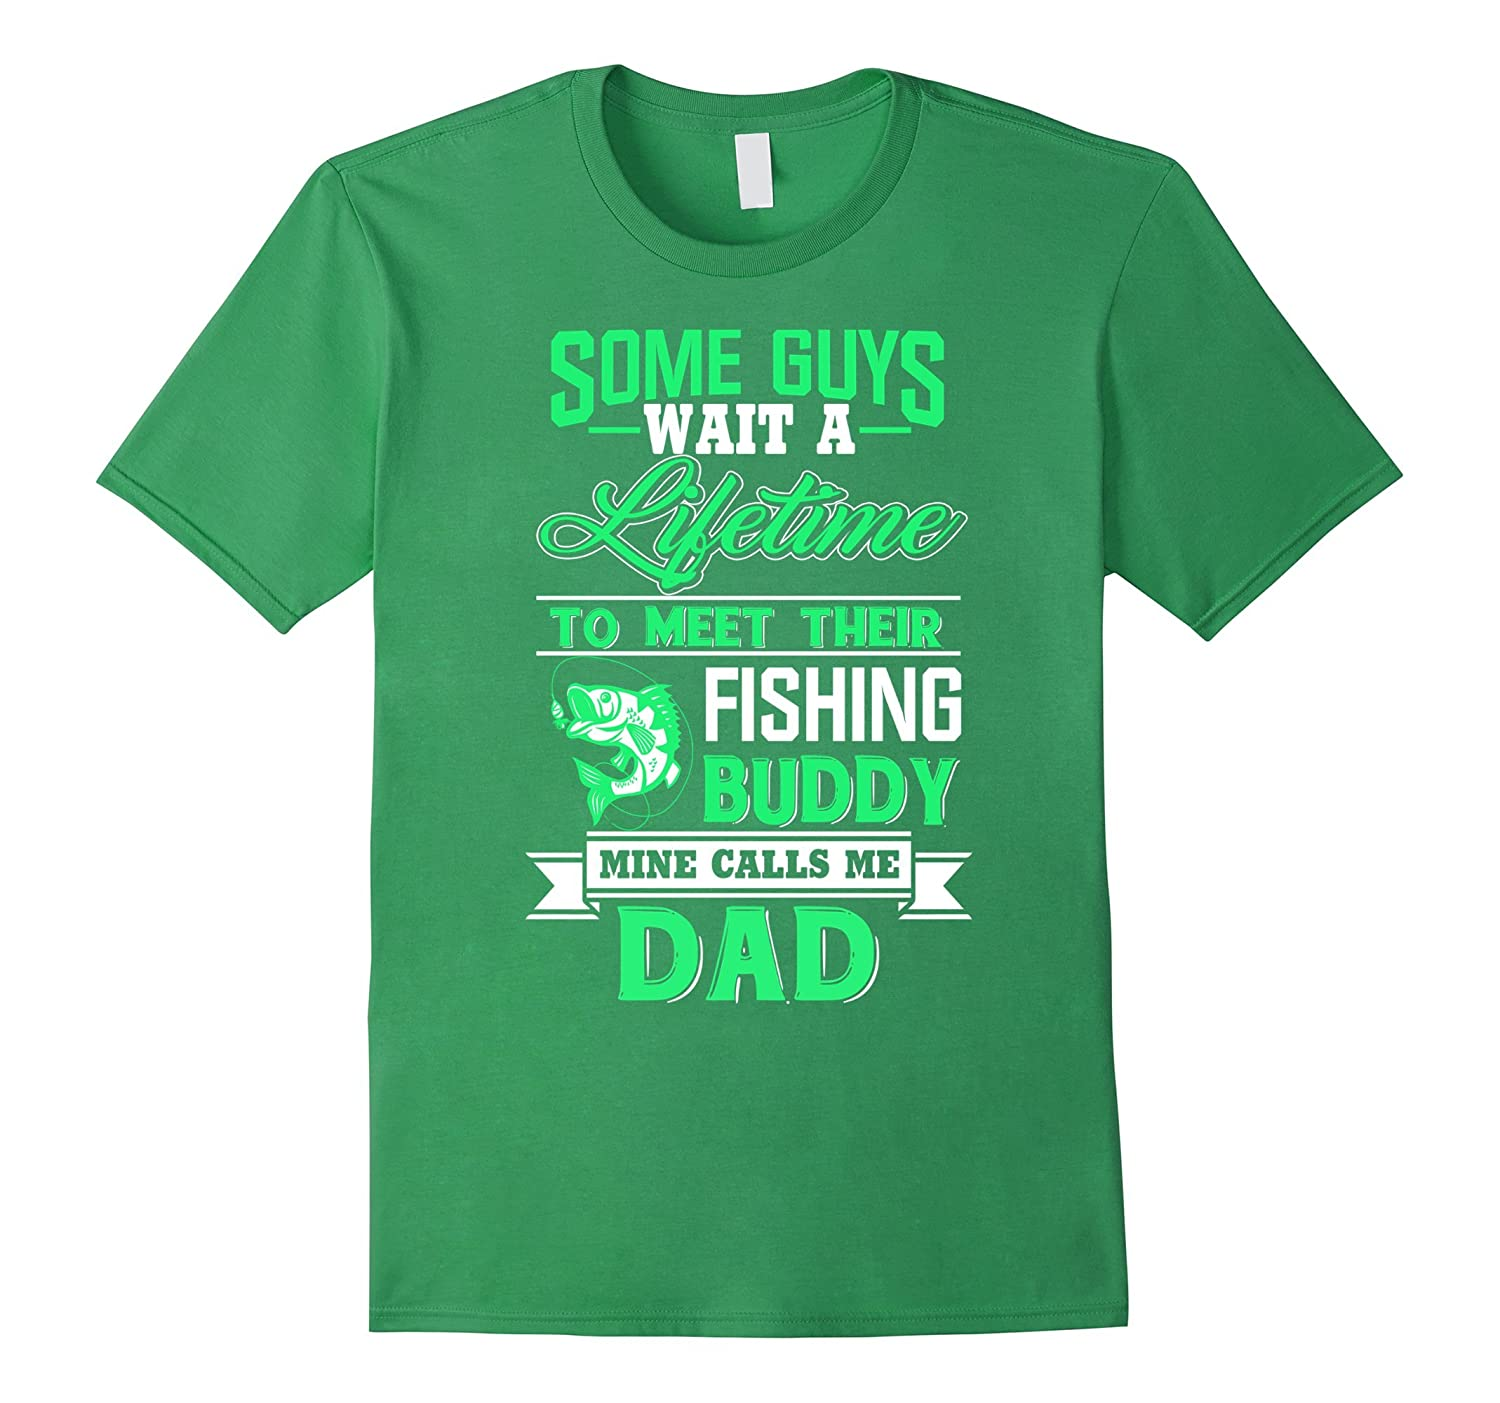 Fishing Buddy Calls Me Dad - Funny T shirts for Father's Day-4LVS